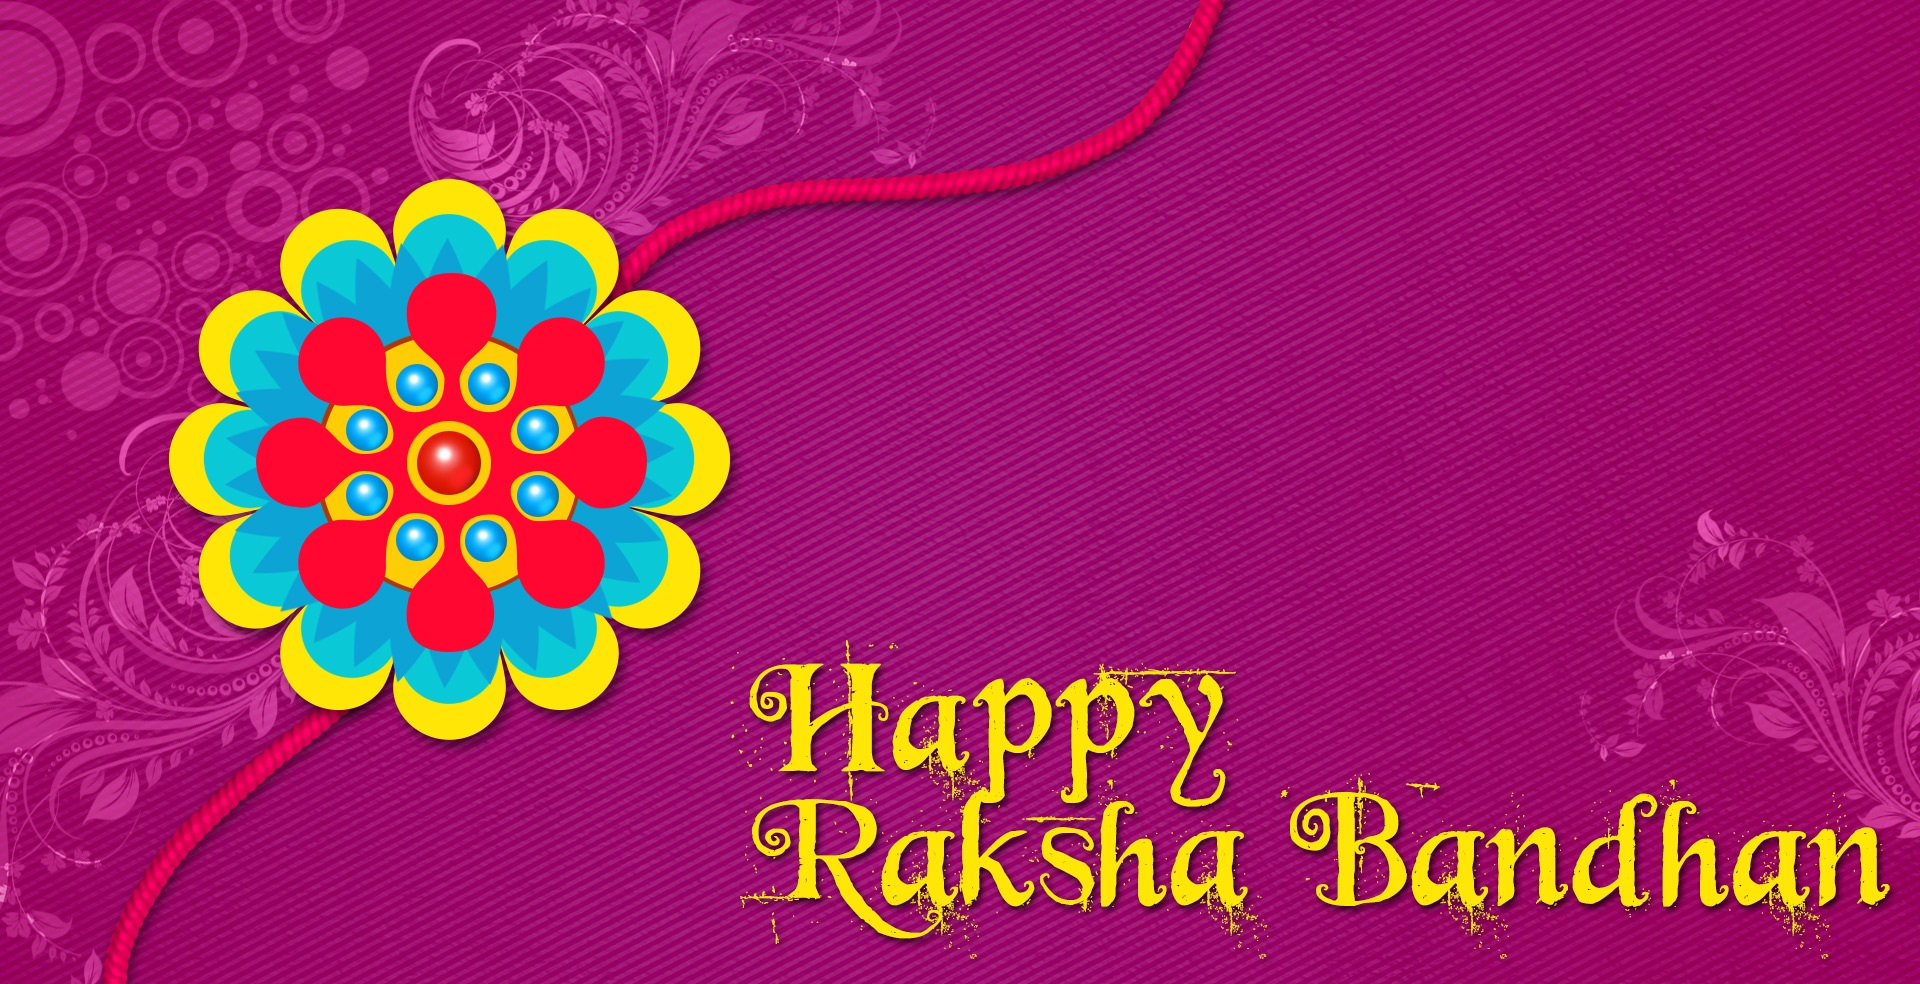 Happy Raksha Bandhan wishes and messages in Bengali for ...